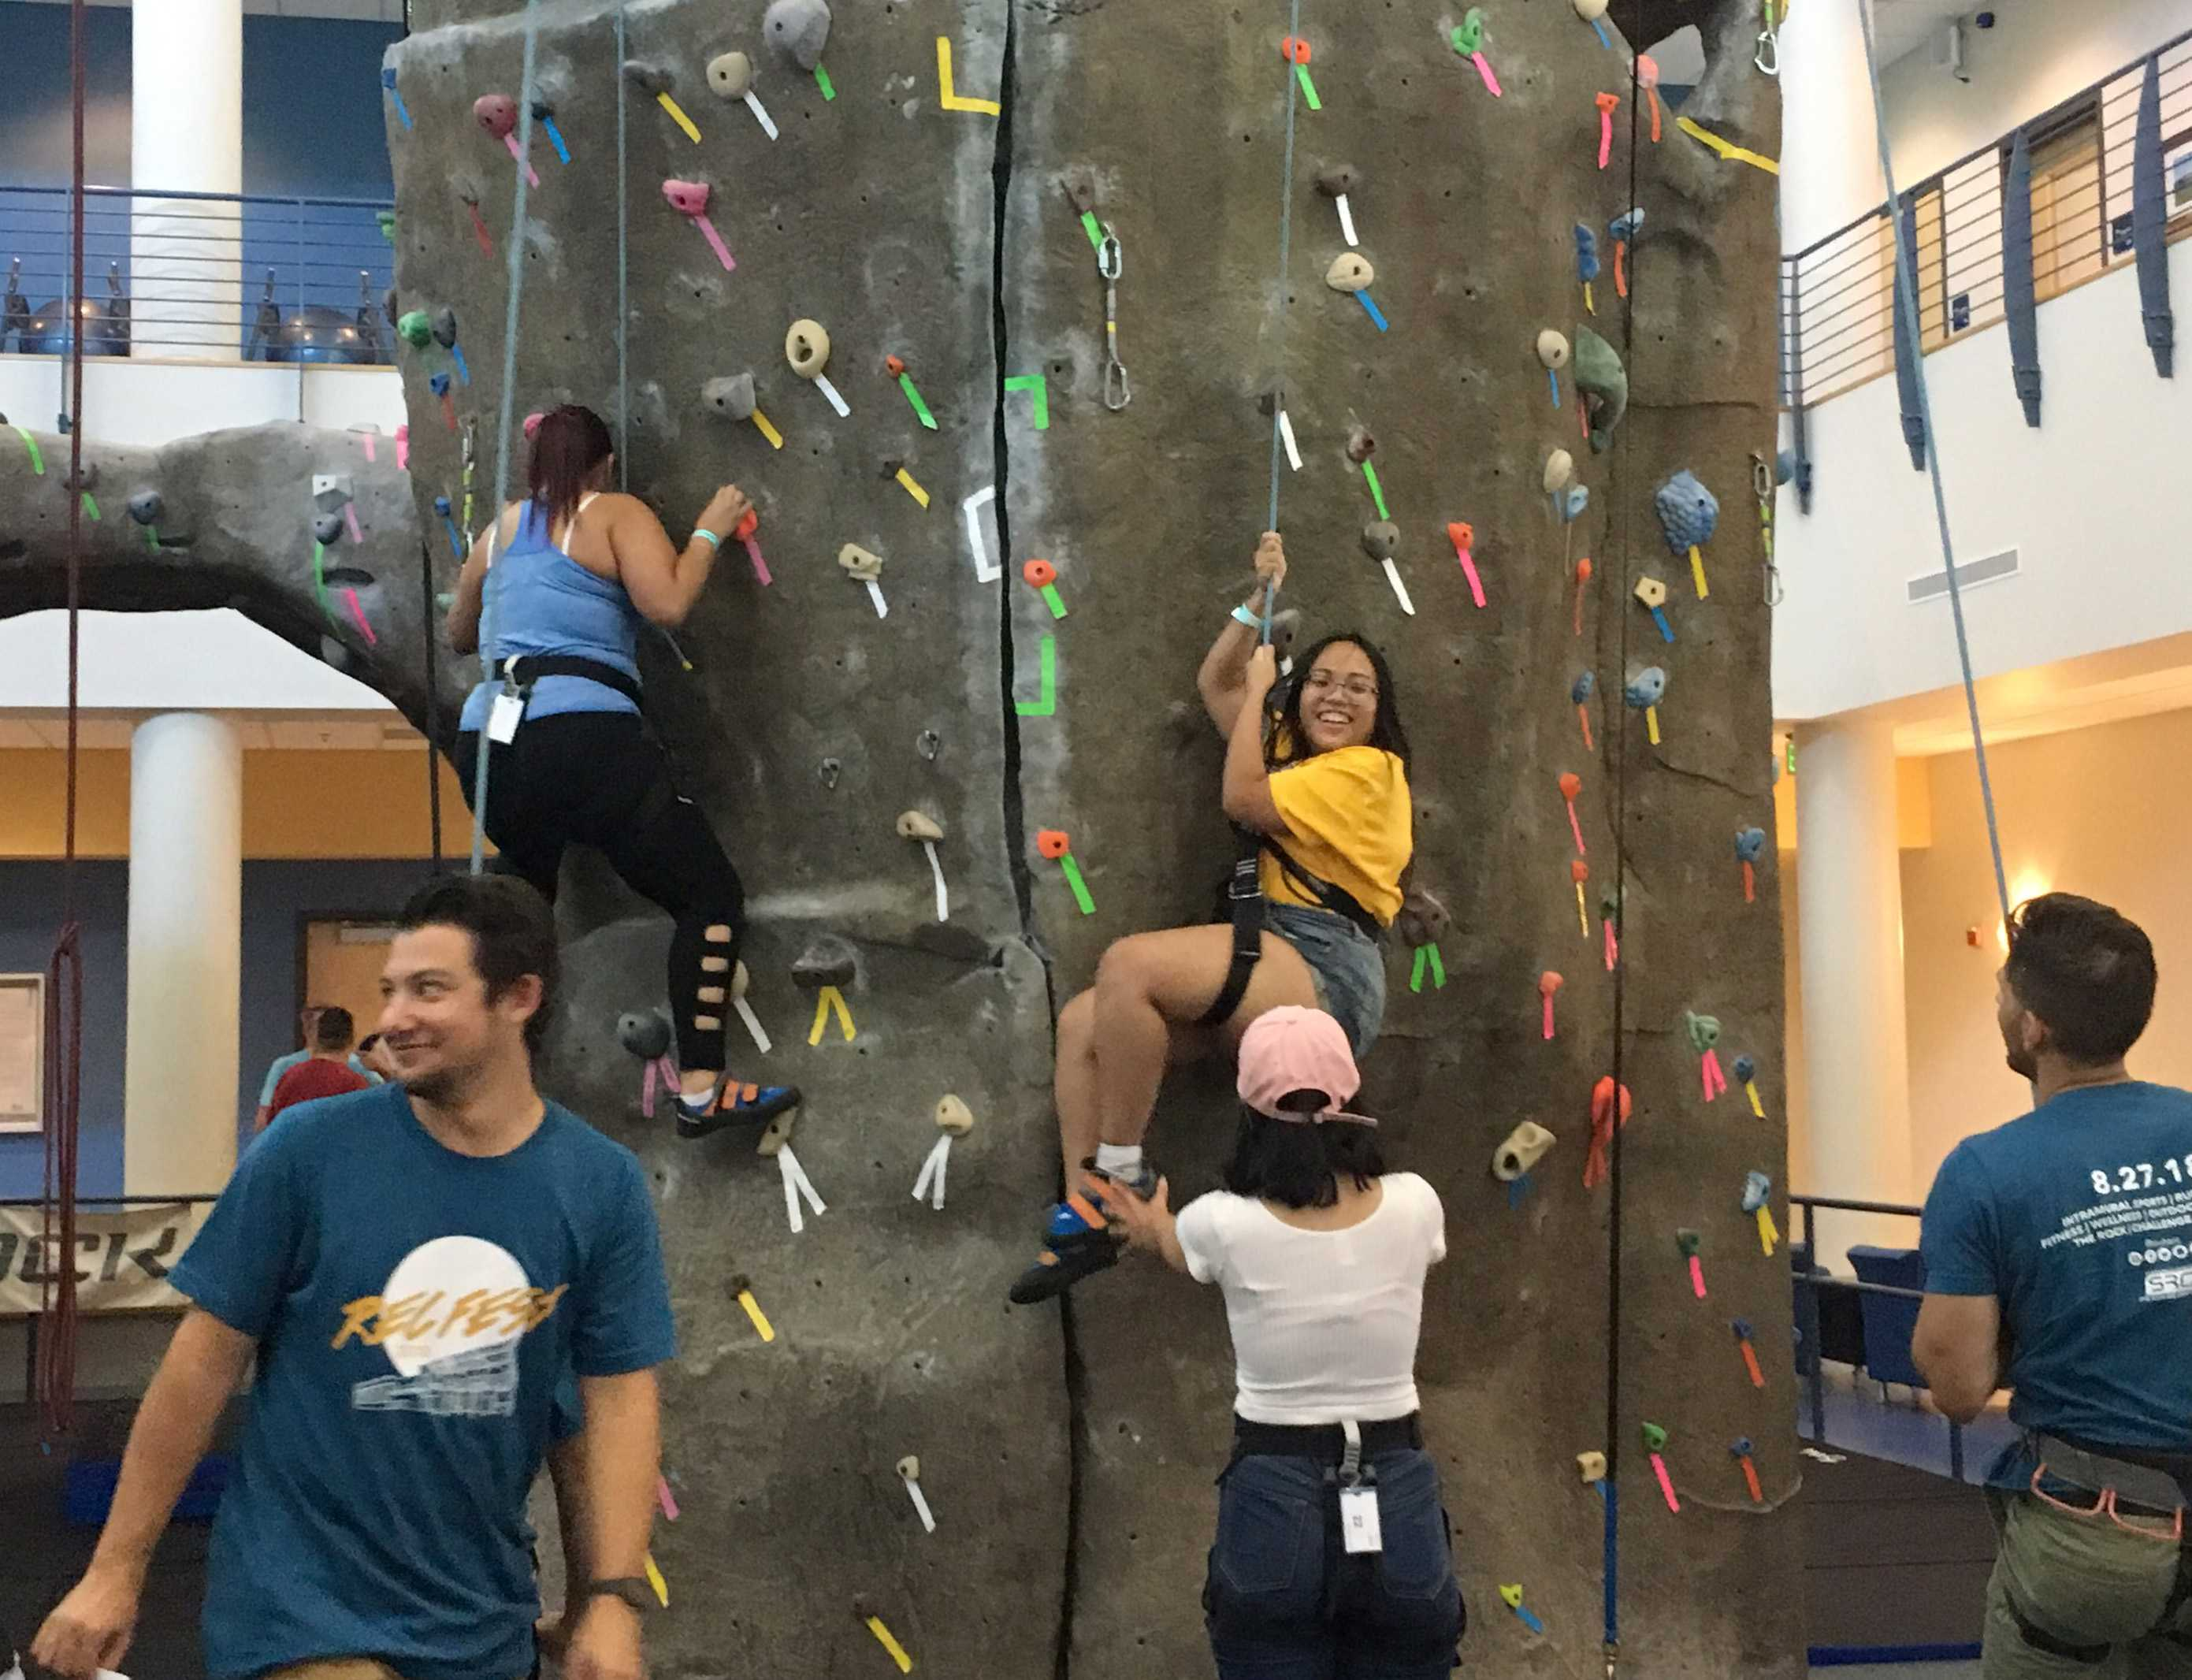 Students climb the rock wall in the Student Recreation Center during Rec Fest on Monday, August 27. Photo by Valerie Hernandez